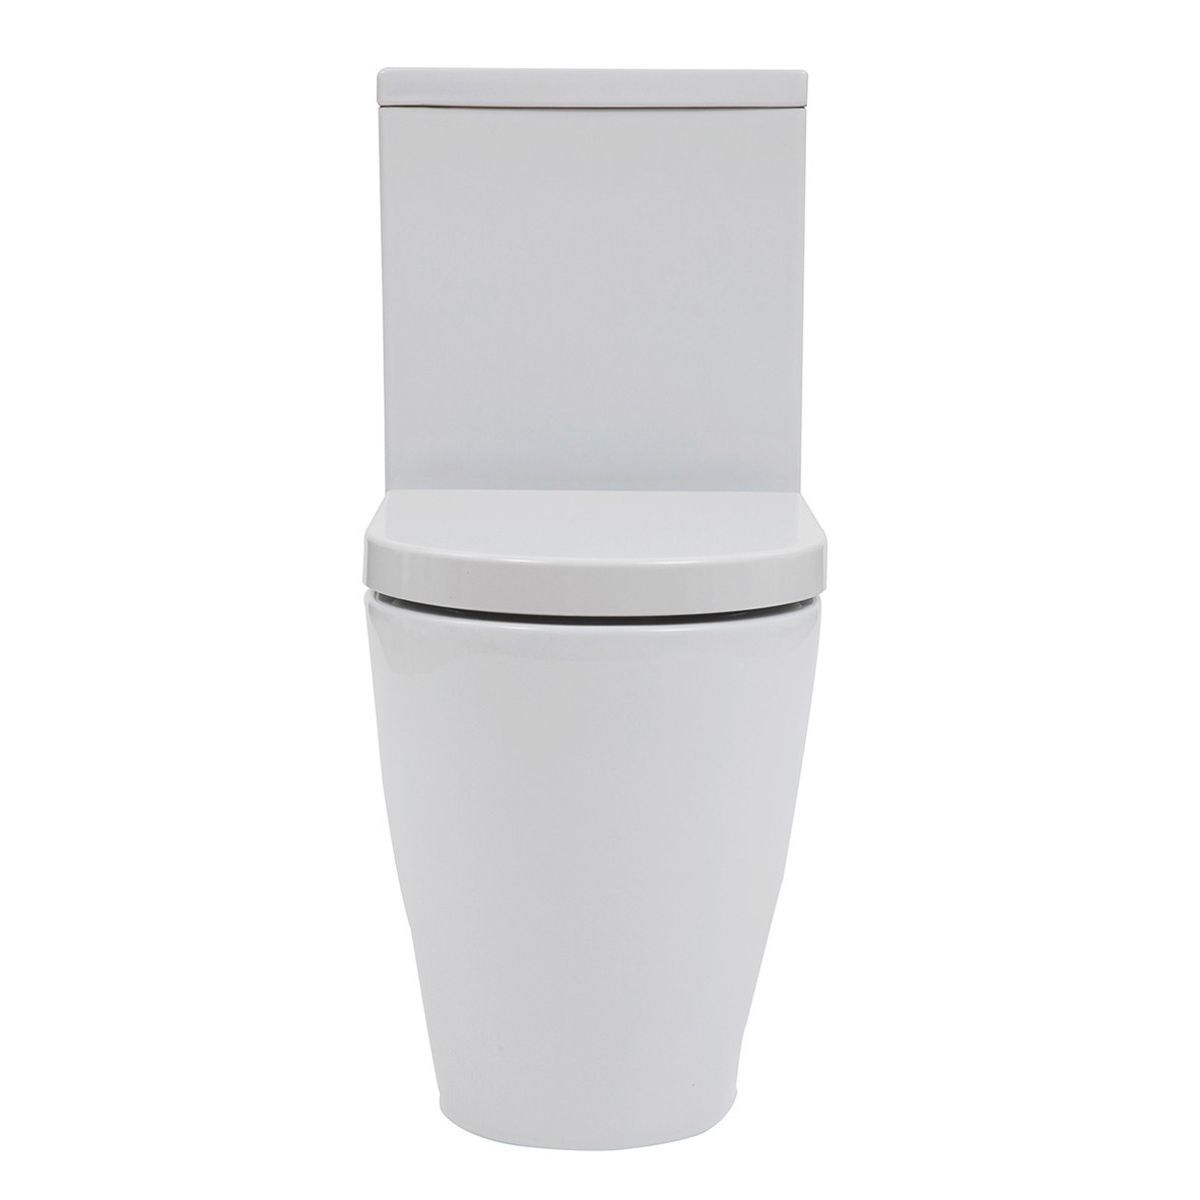 Frontline Emme Close Coupled WC Pan